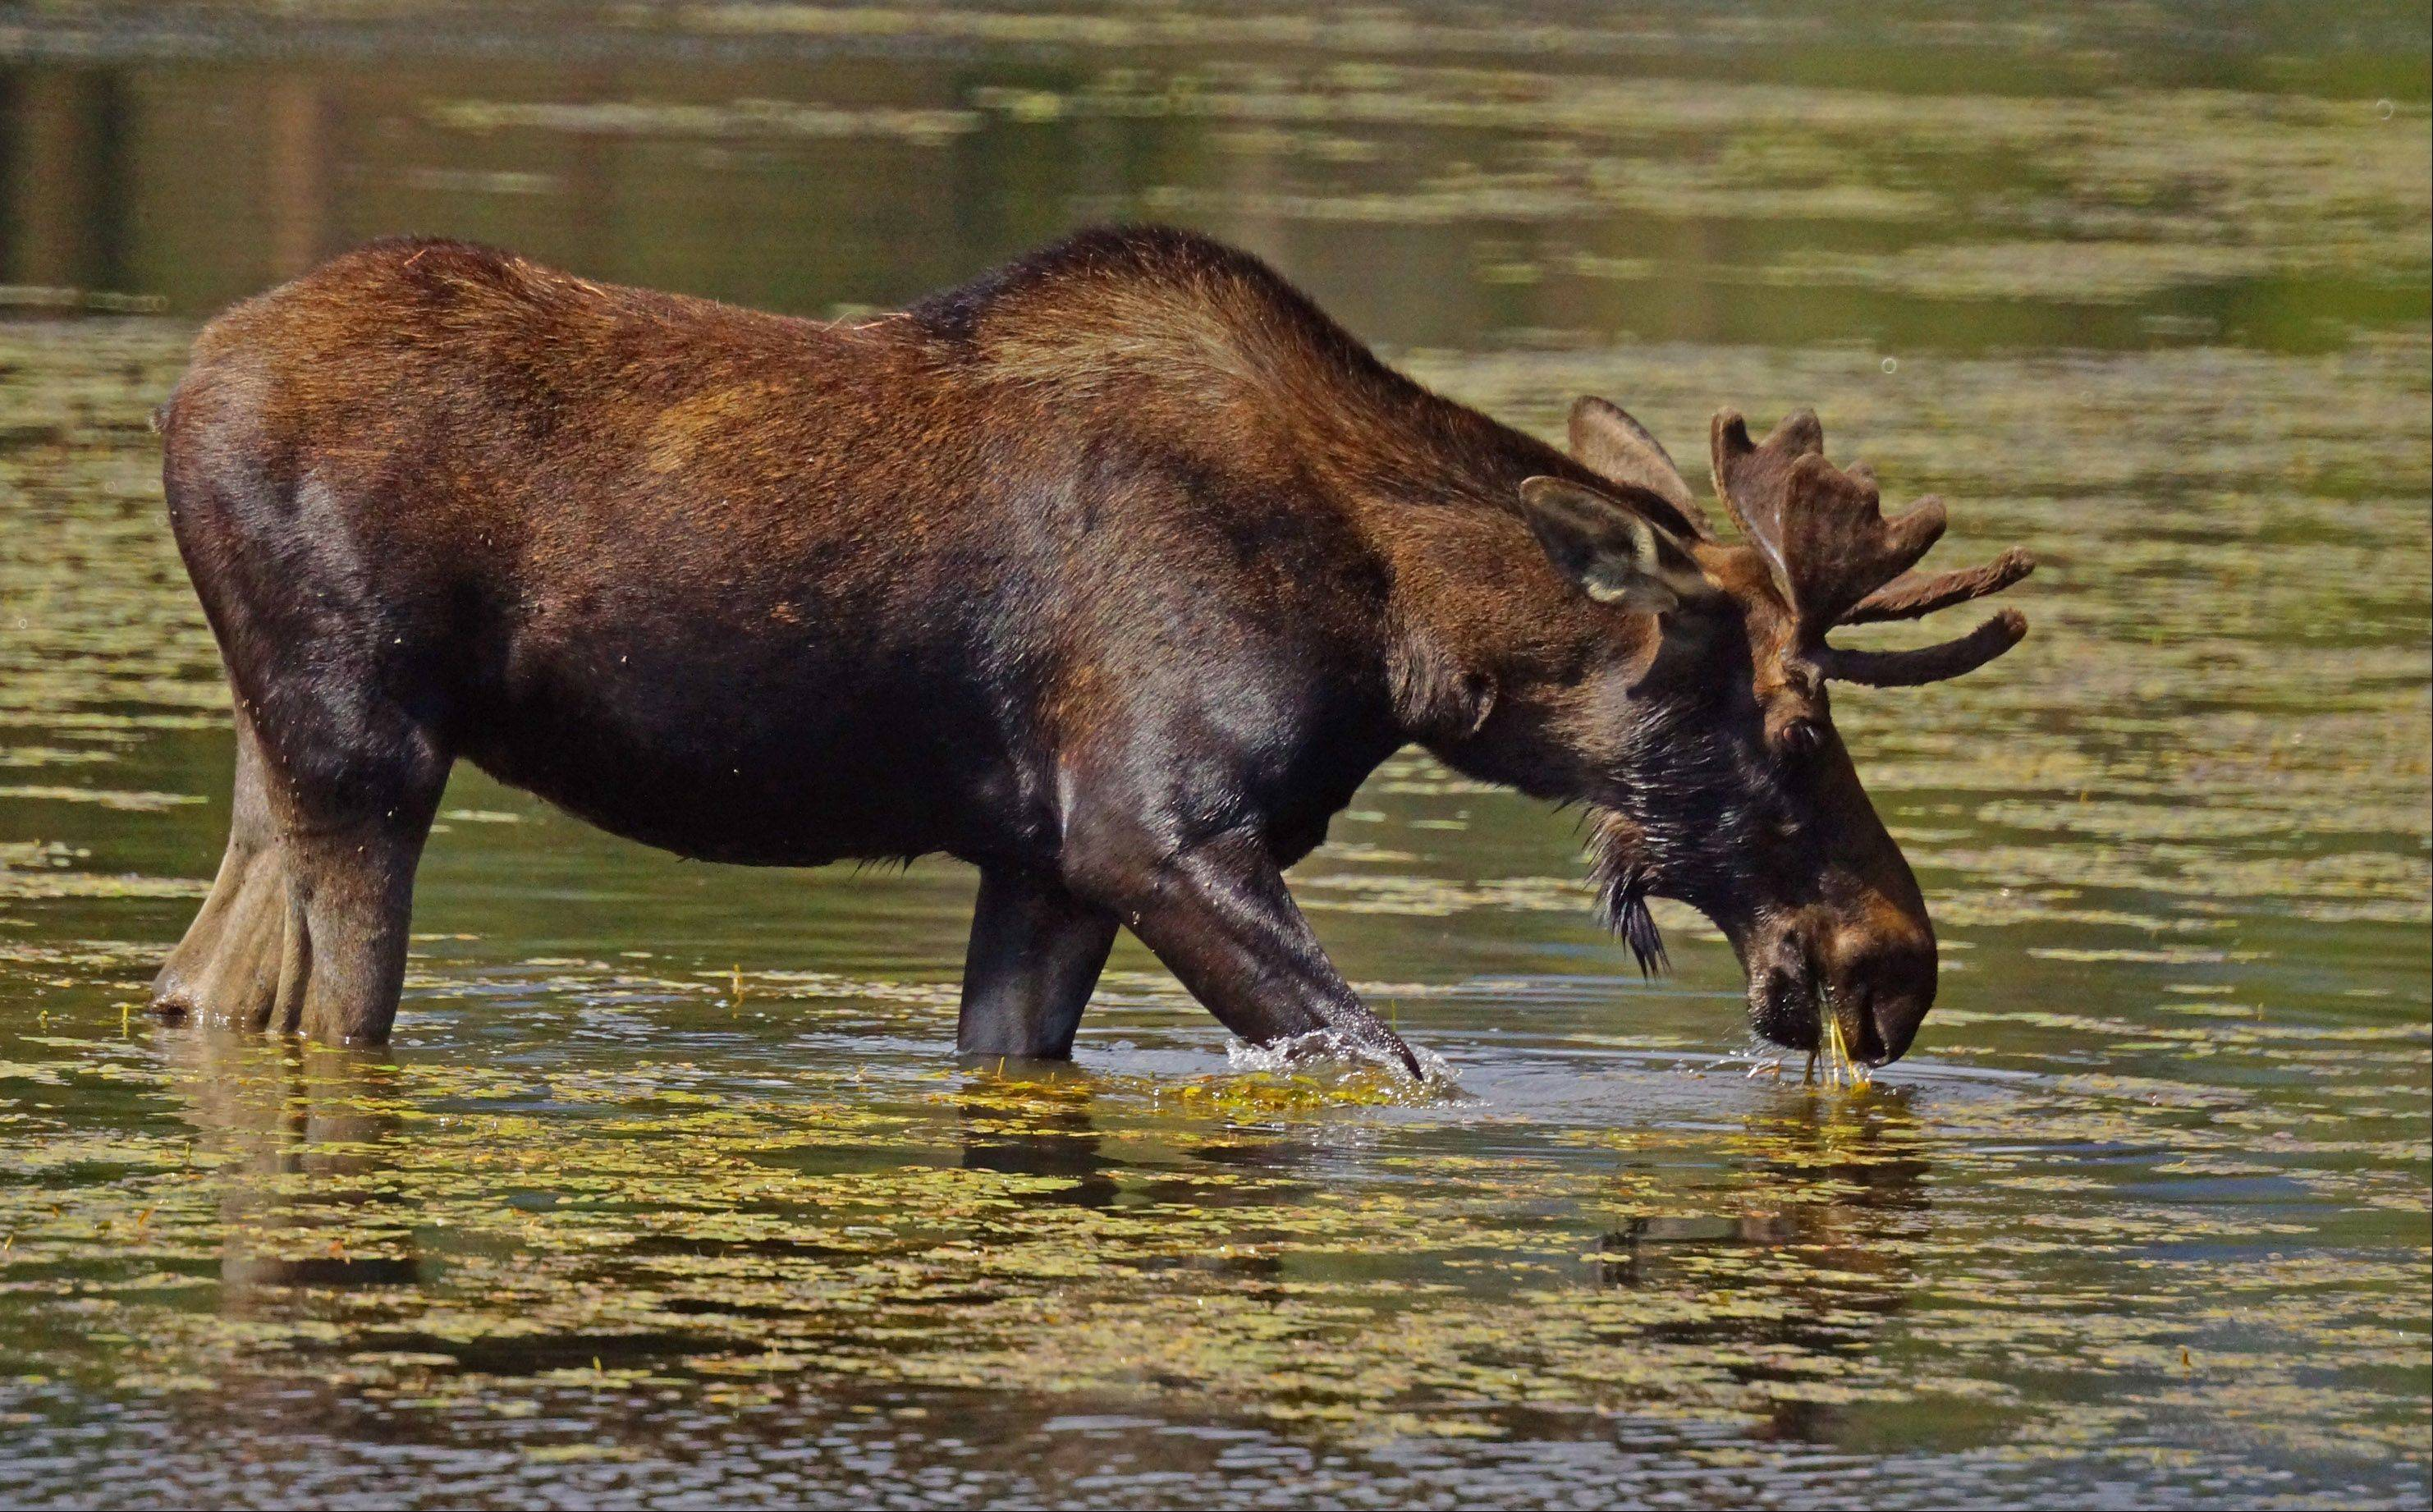 My son Steve and I were hiking around Sprague Lake in Rocky Mountain National Park when we accidentally surprised this bull moose grazing at the lake's edge. He gave us a nervous grunt and quickly moved toward the middle of the shallow lake to resume his eating.